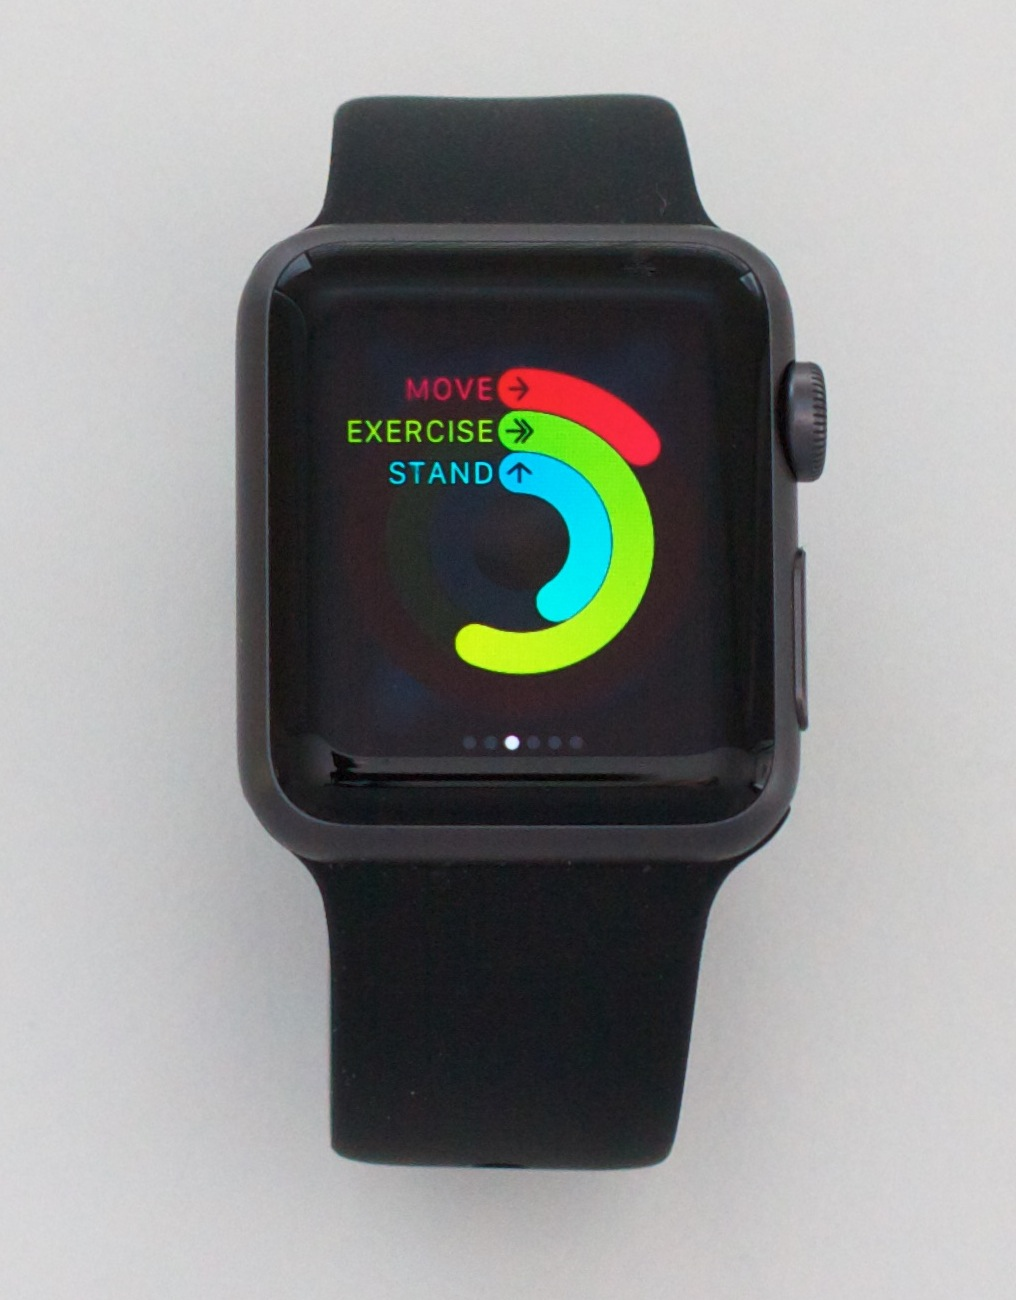 apple fitness watch. the rings in question: they close when goal for day has been met. peter parkes, cc by apple fitness watch